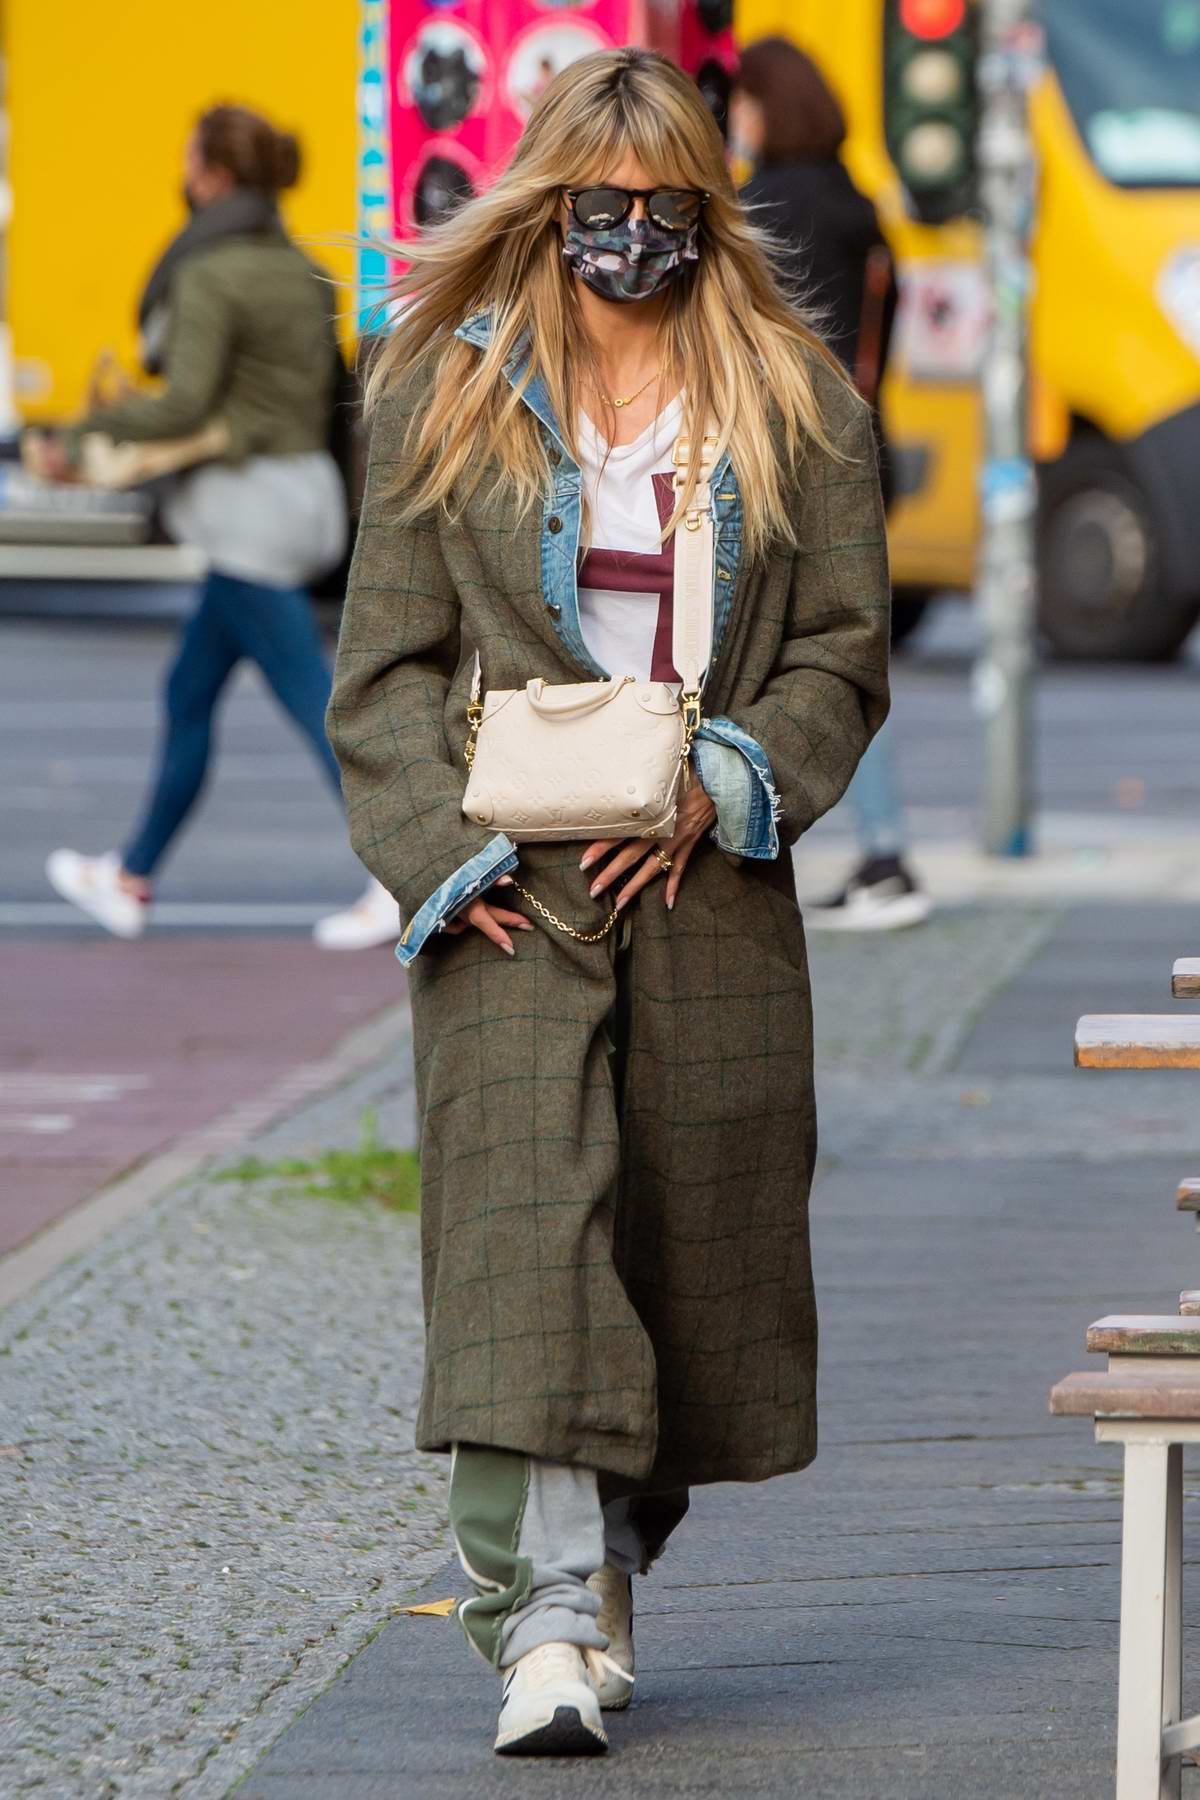 Heidi Klum steps out for some shopping in Berlin, Germany